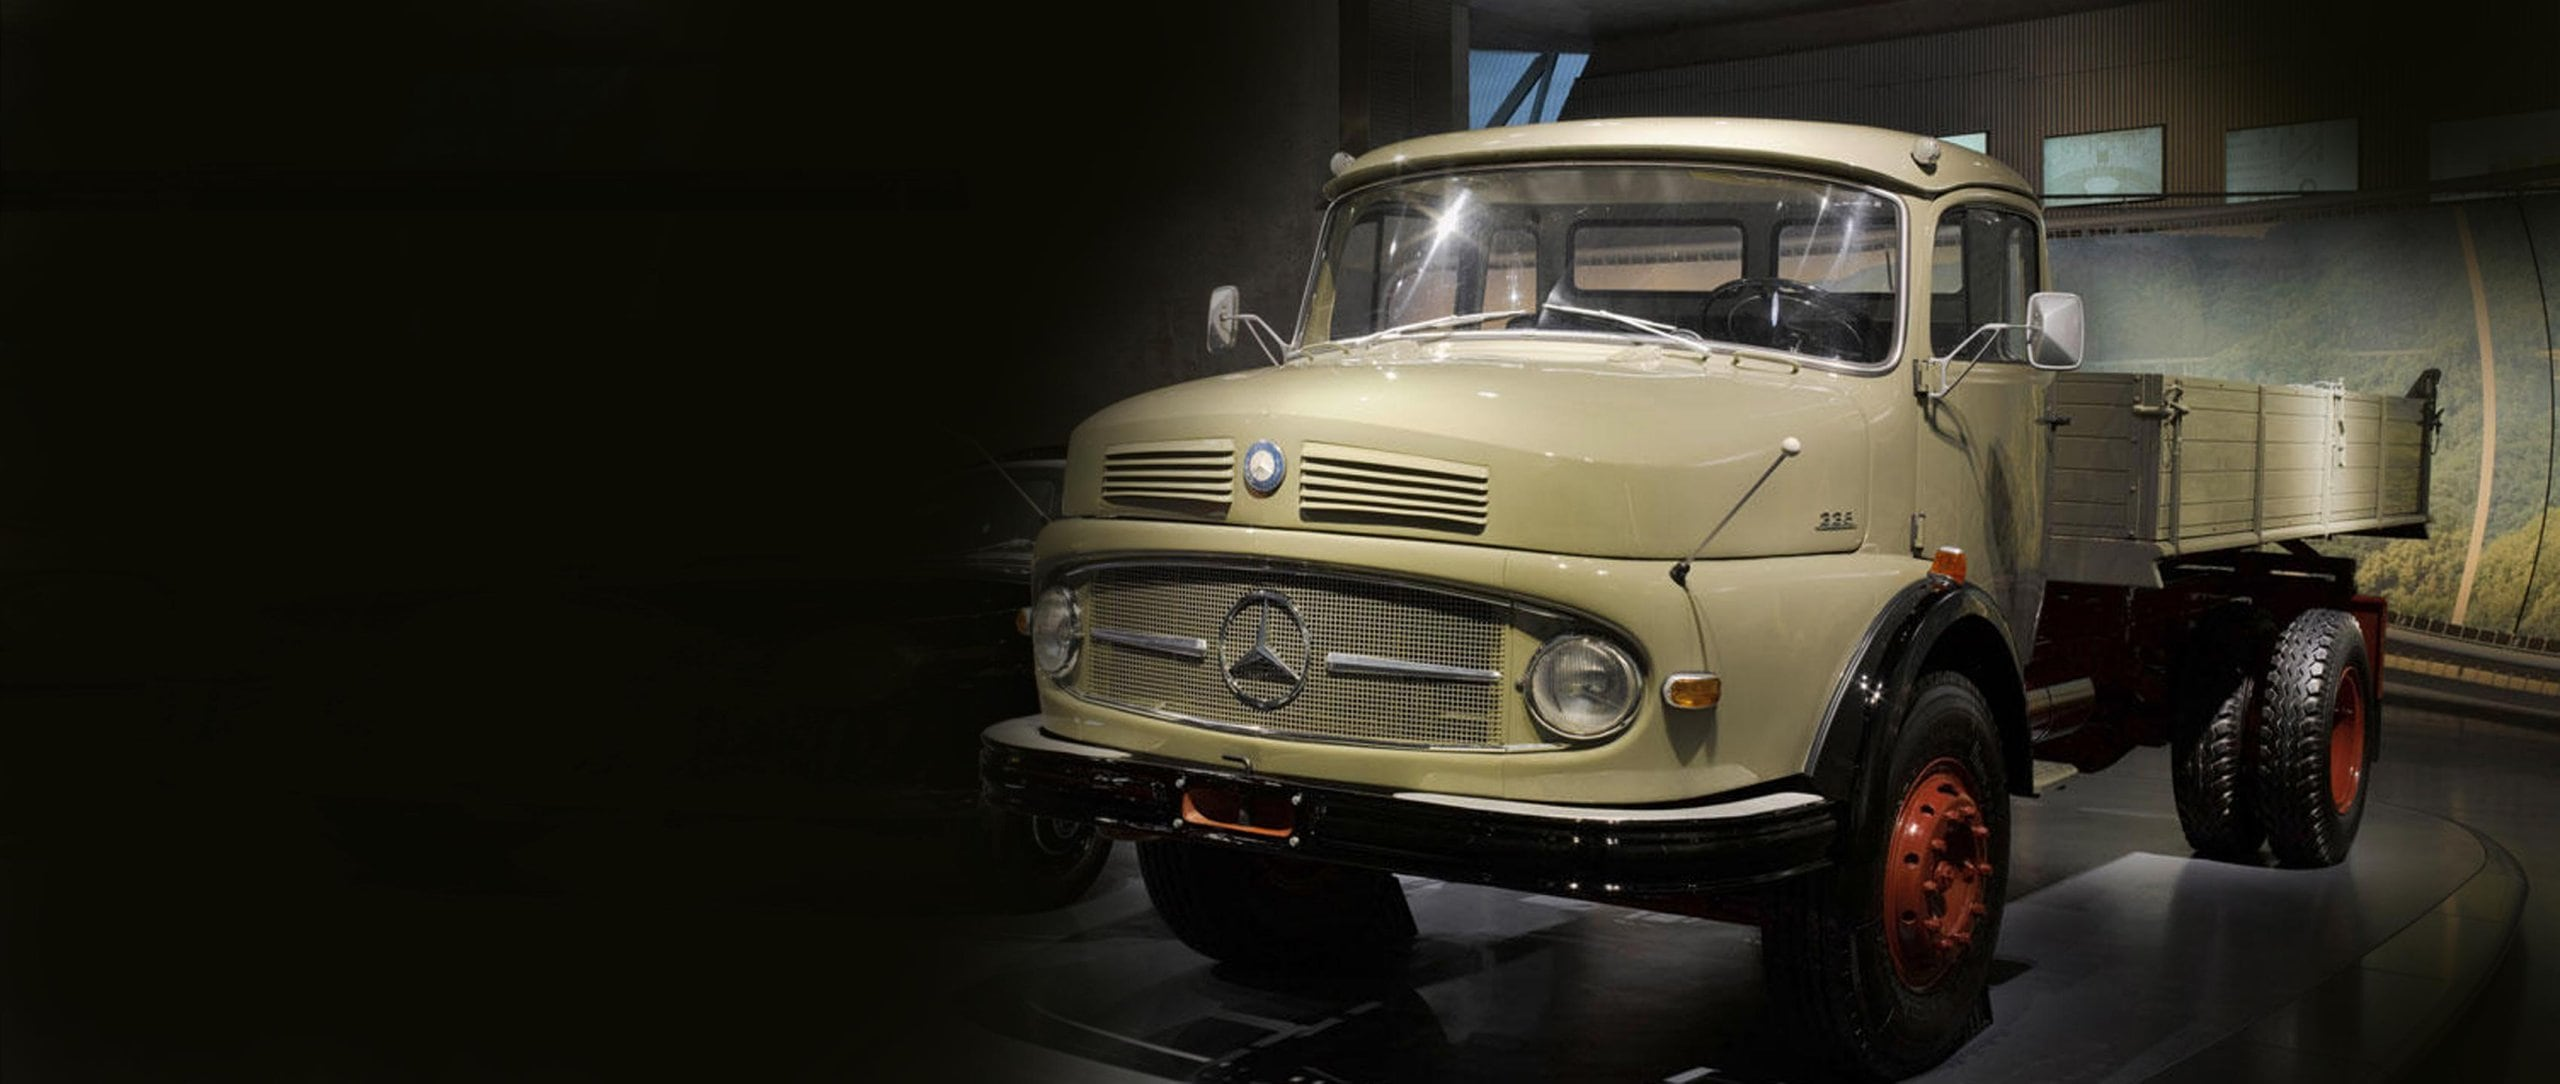 Mercedes-Benz LK 338 Kipper.